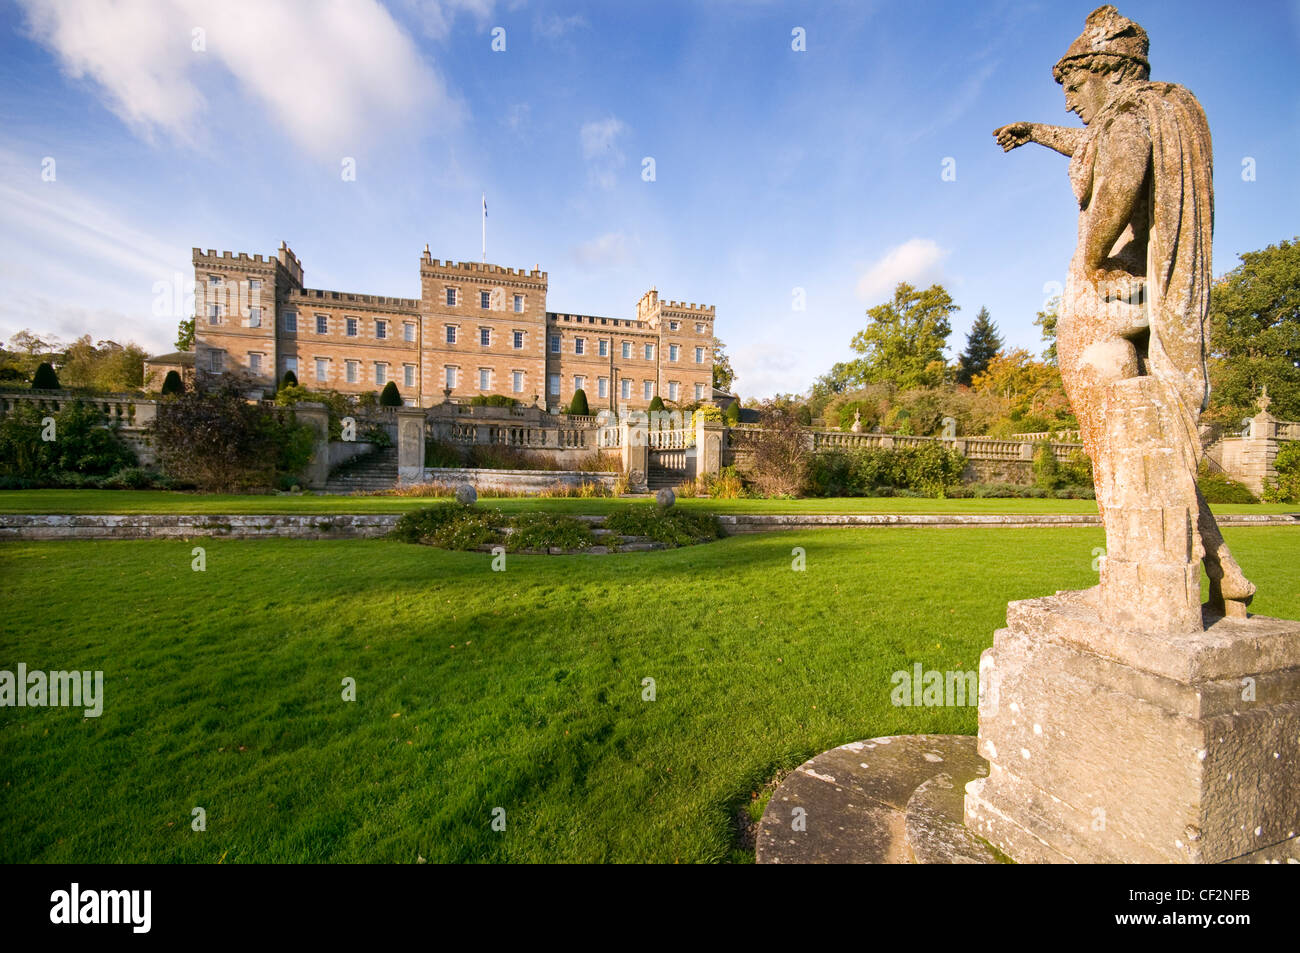 Mellerstain House, a stately home built between 1725 and 1778 in the Scottish Borders. The architect William Adam - Stock Image